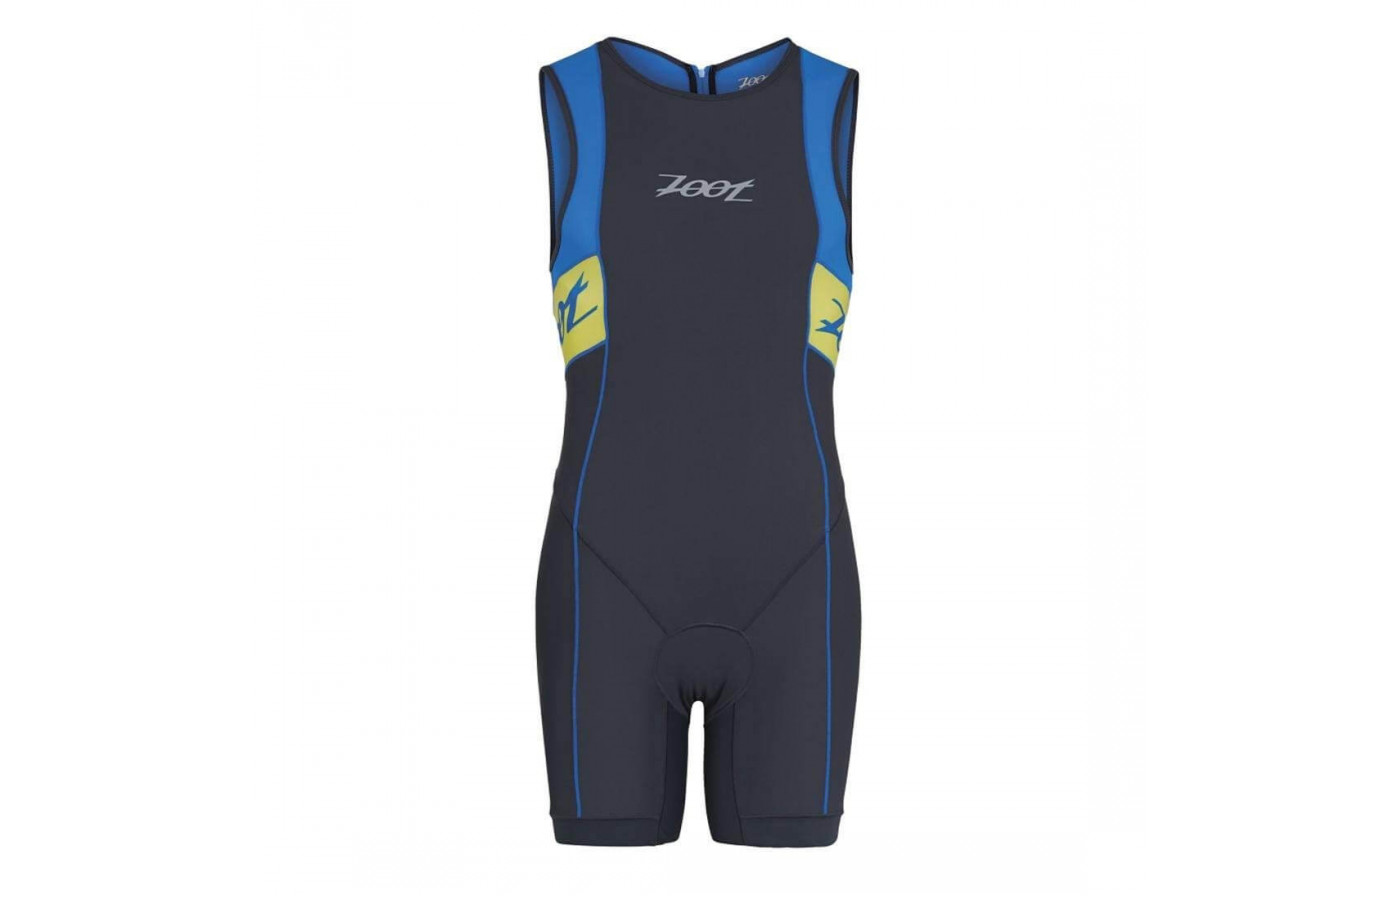 The Zoot Performance Tri Racesuit has pockets for storage